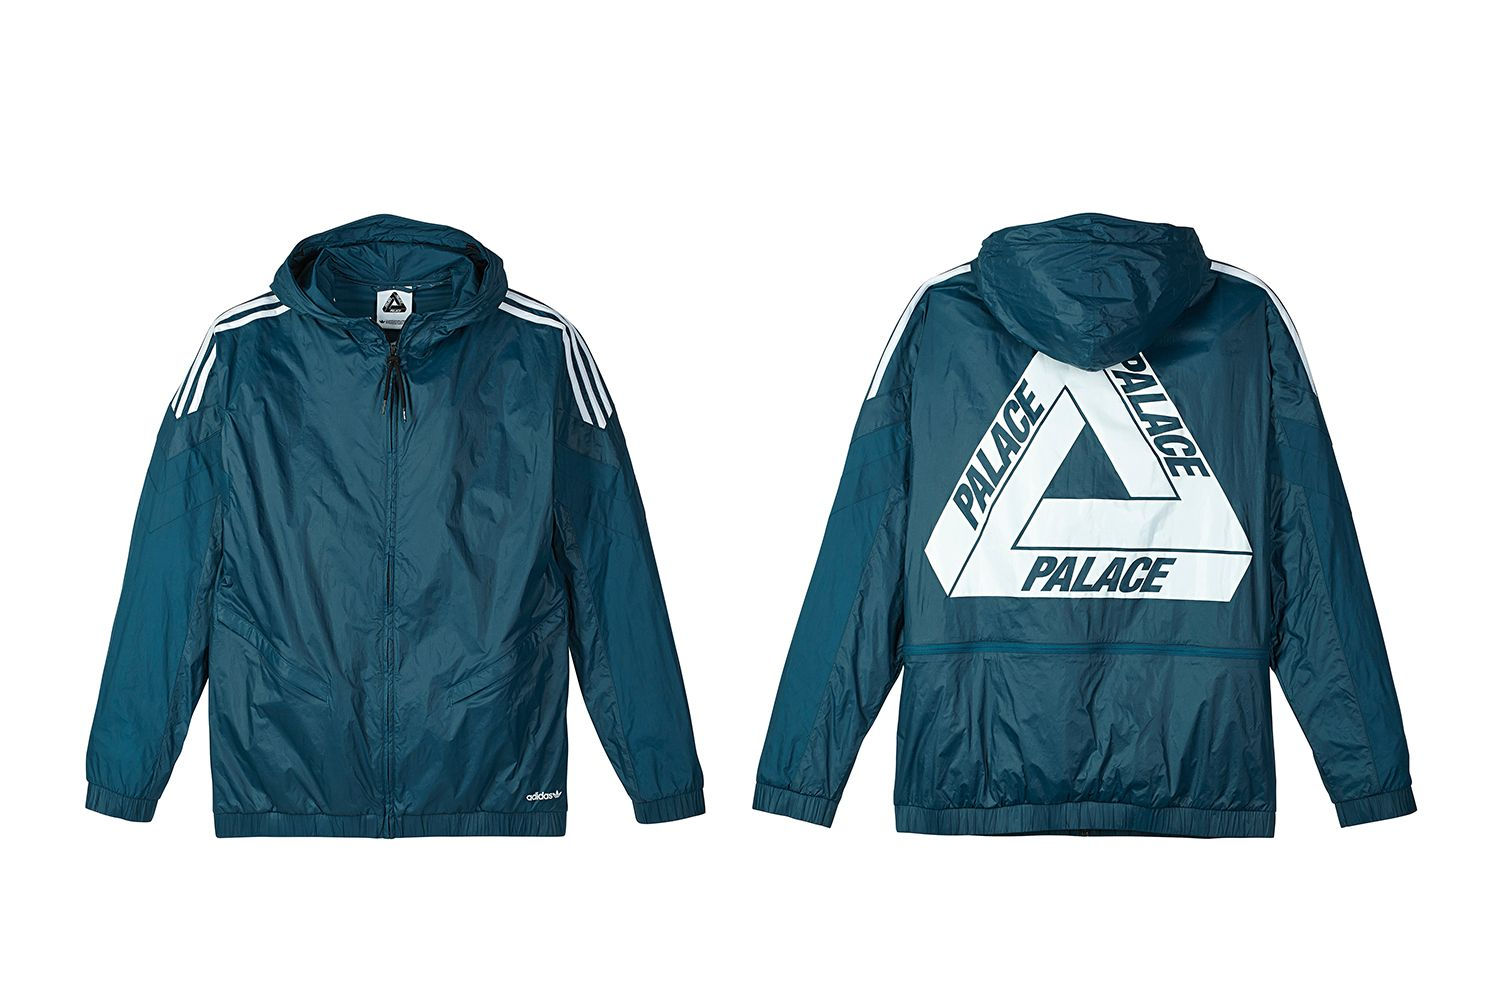 palace x adidas originals